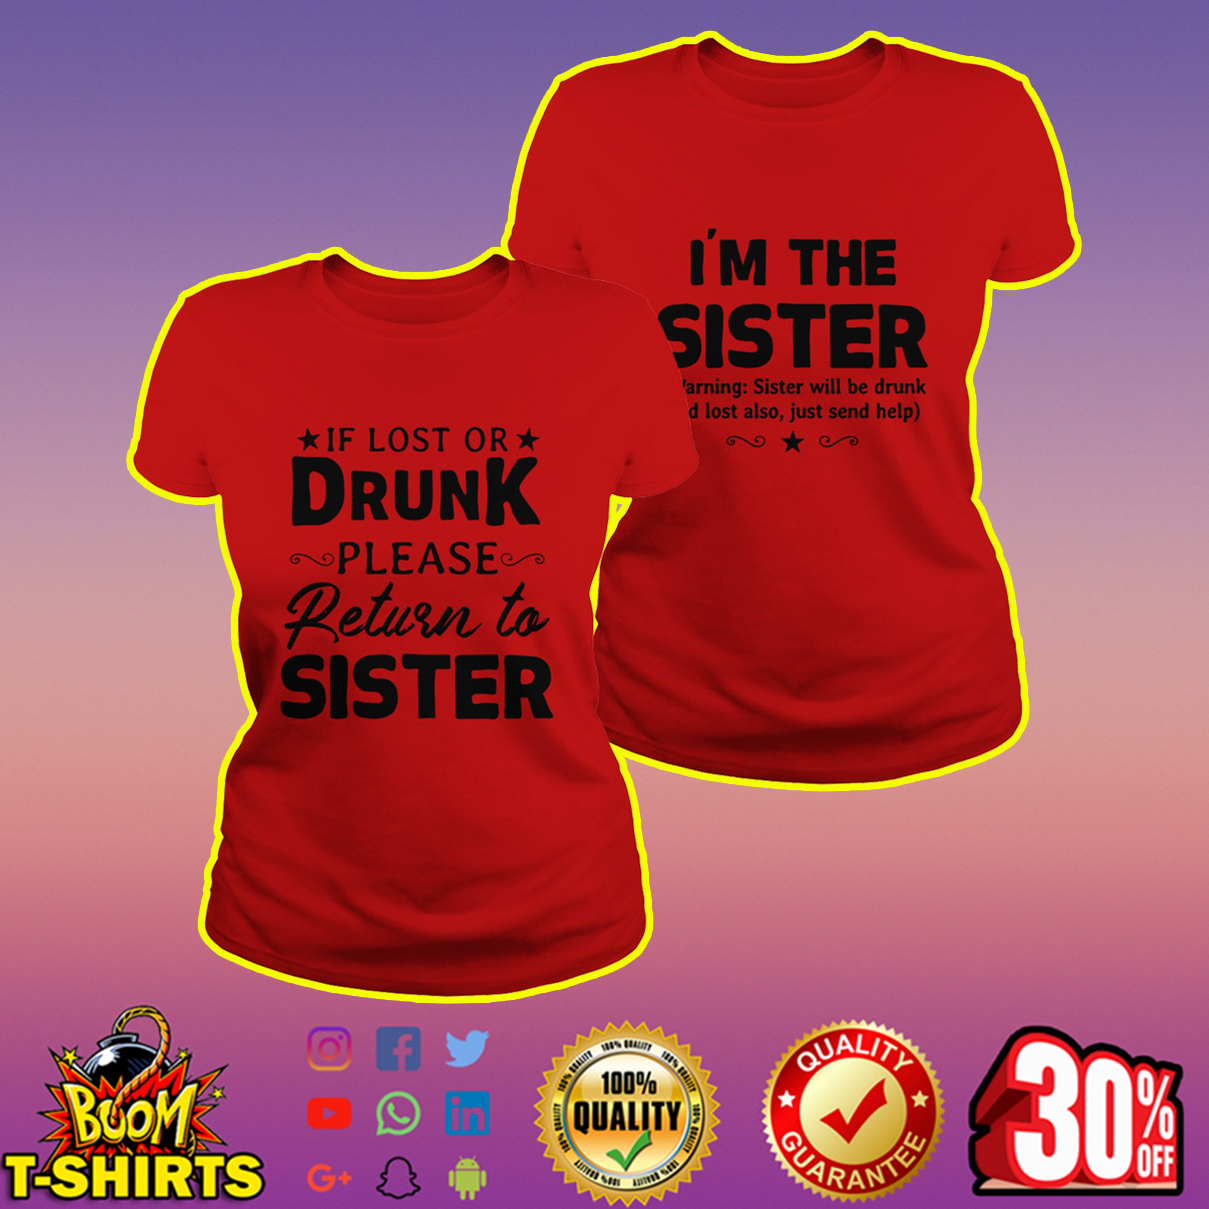 If lost or drunk please return to sister shirt - red